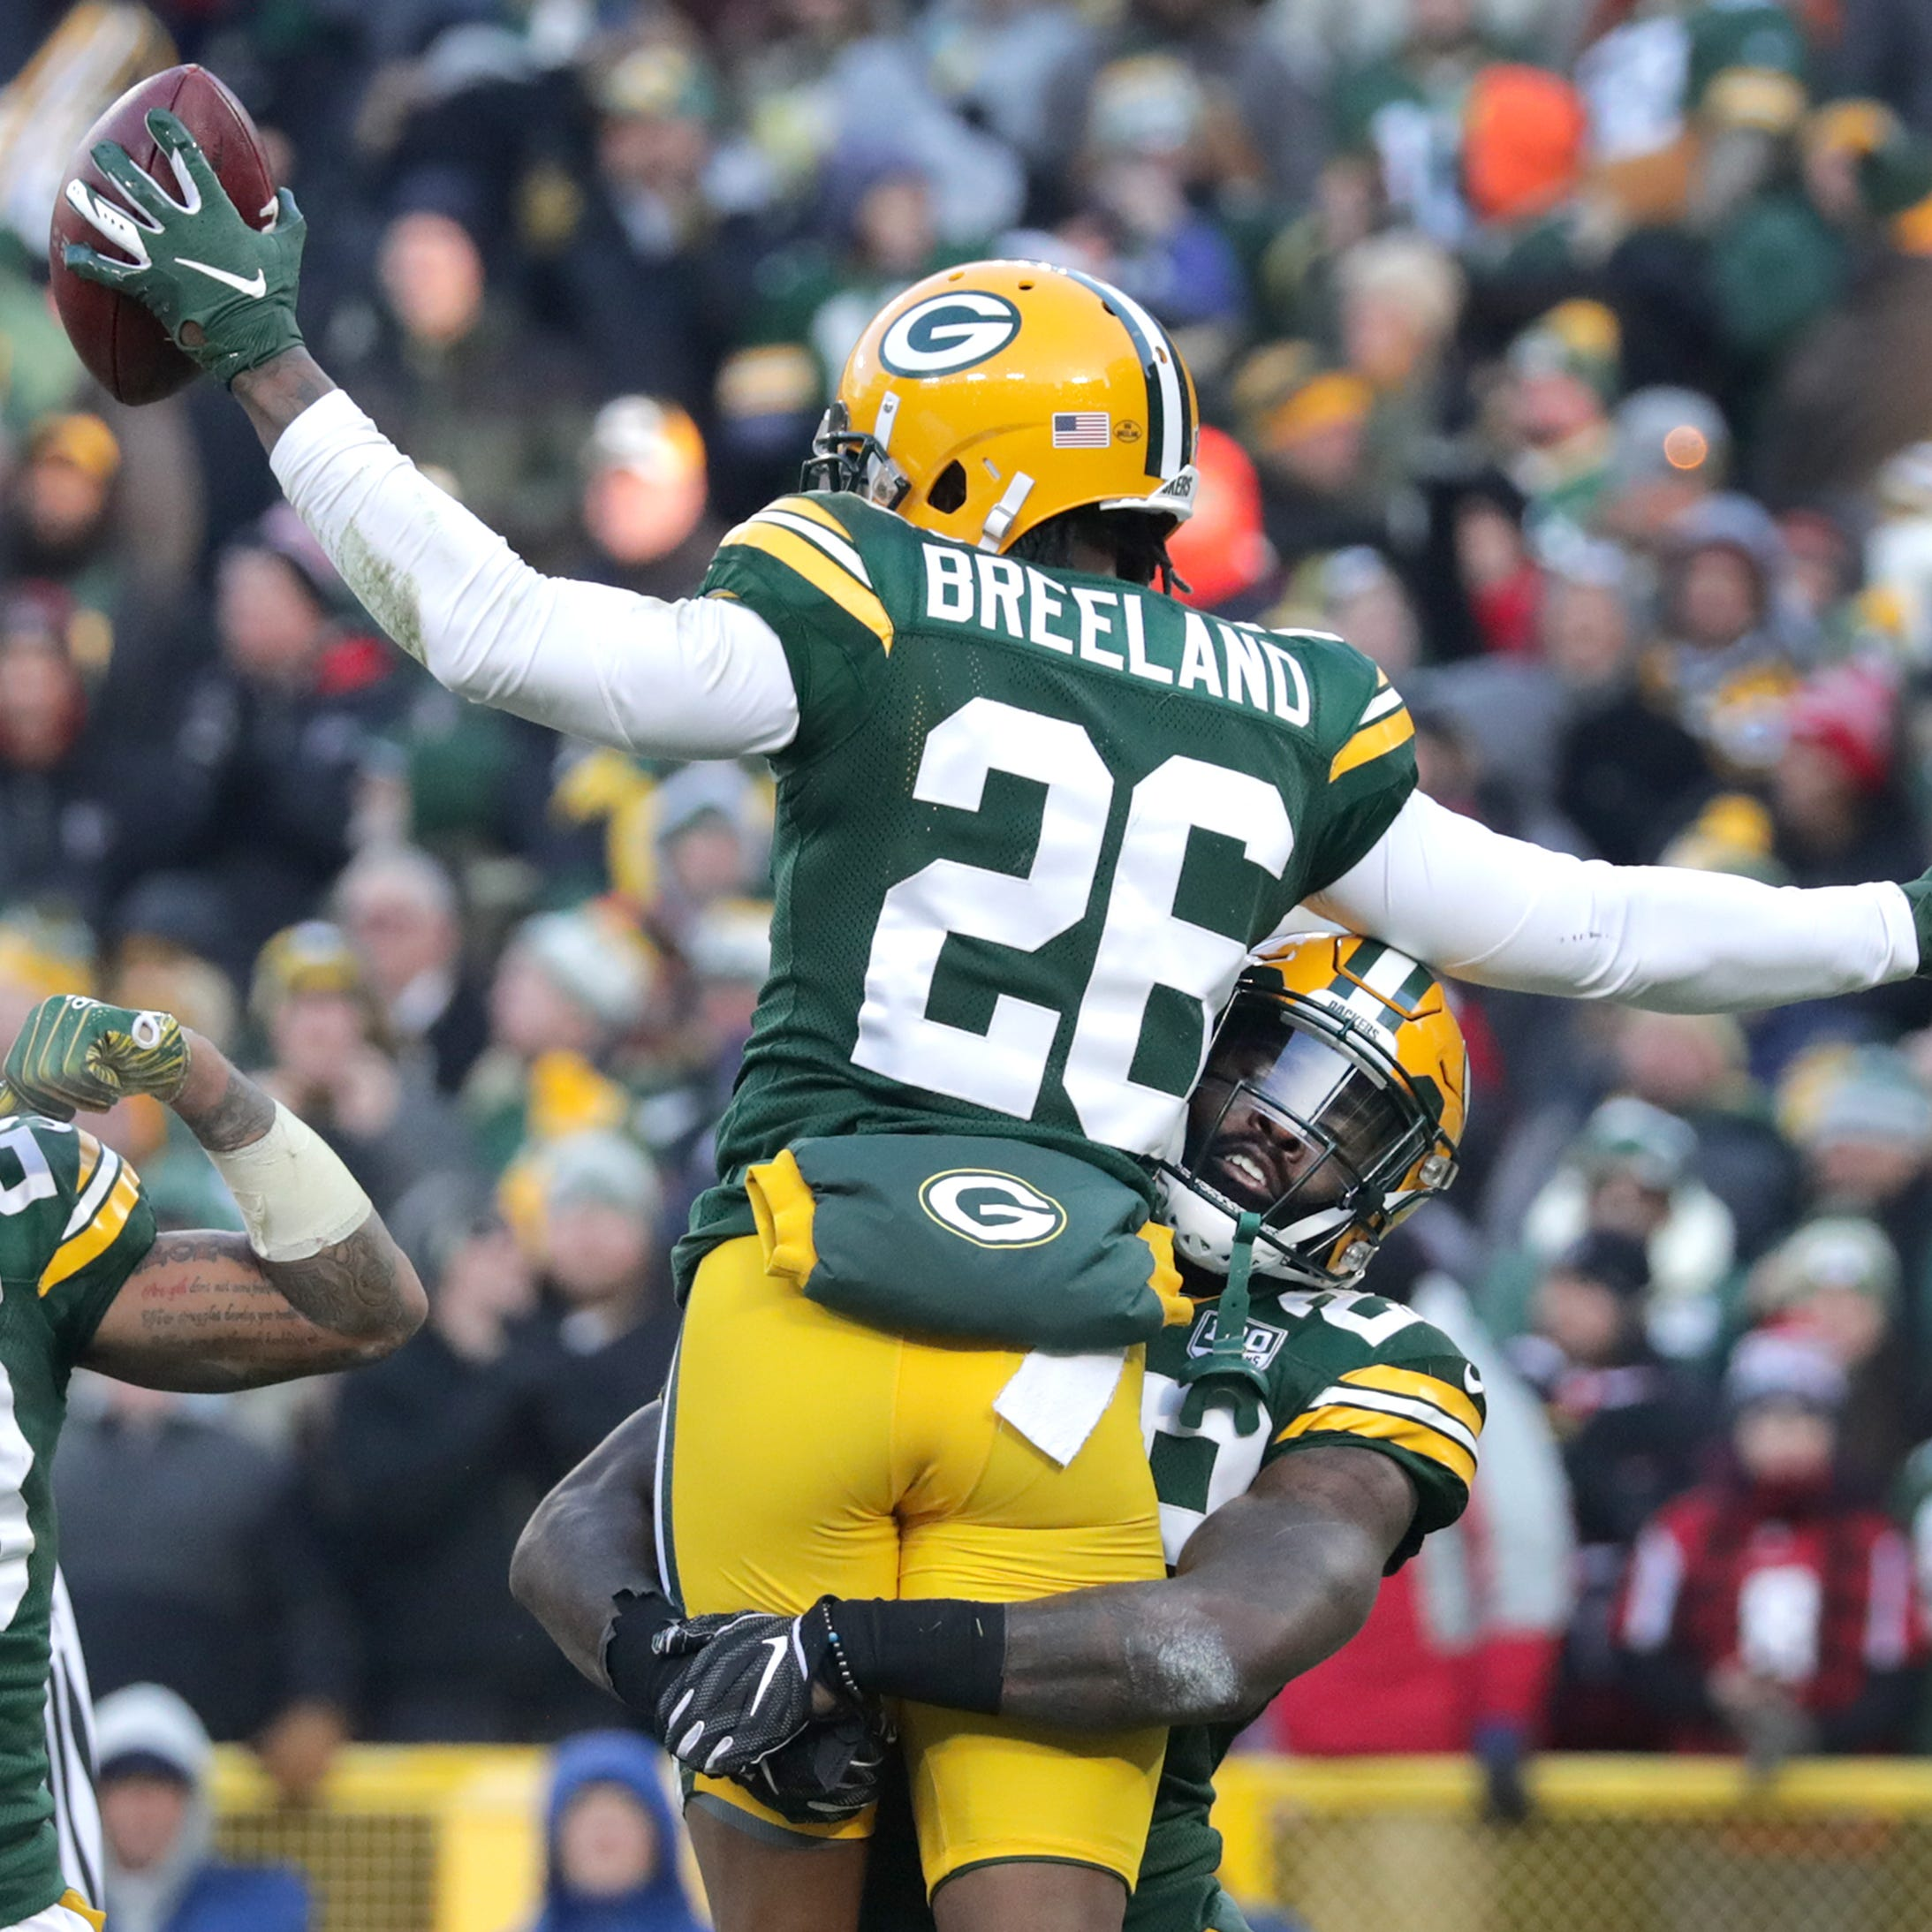 Cornerback Bashaud Breeland hoping Packers take leap of faith on him